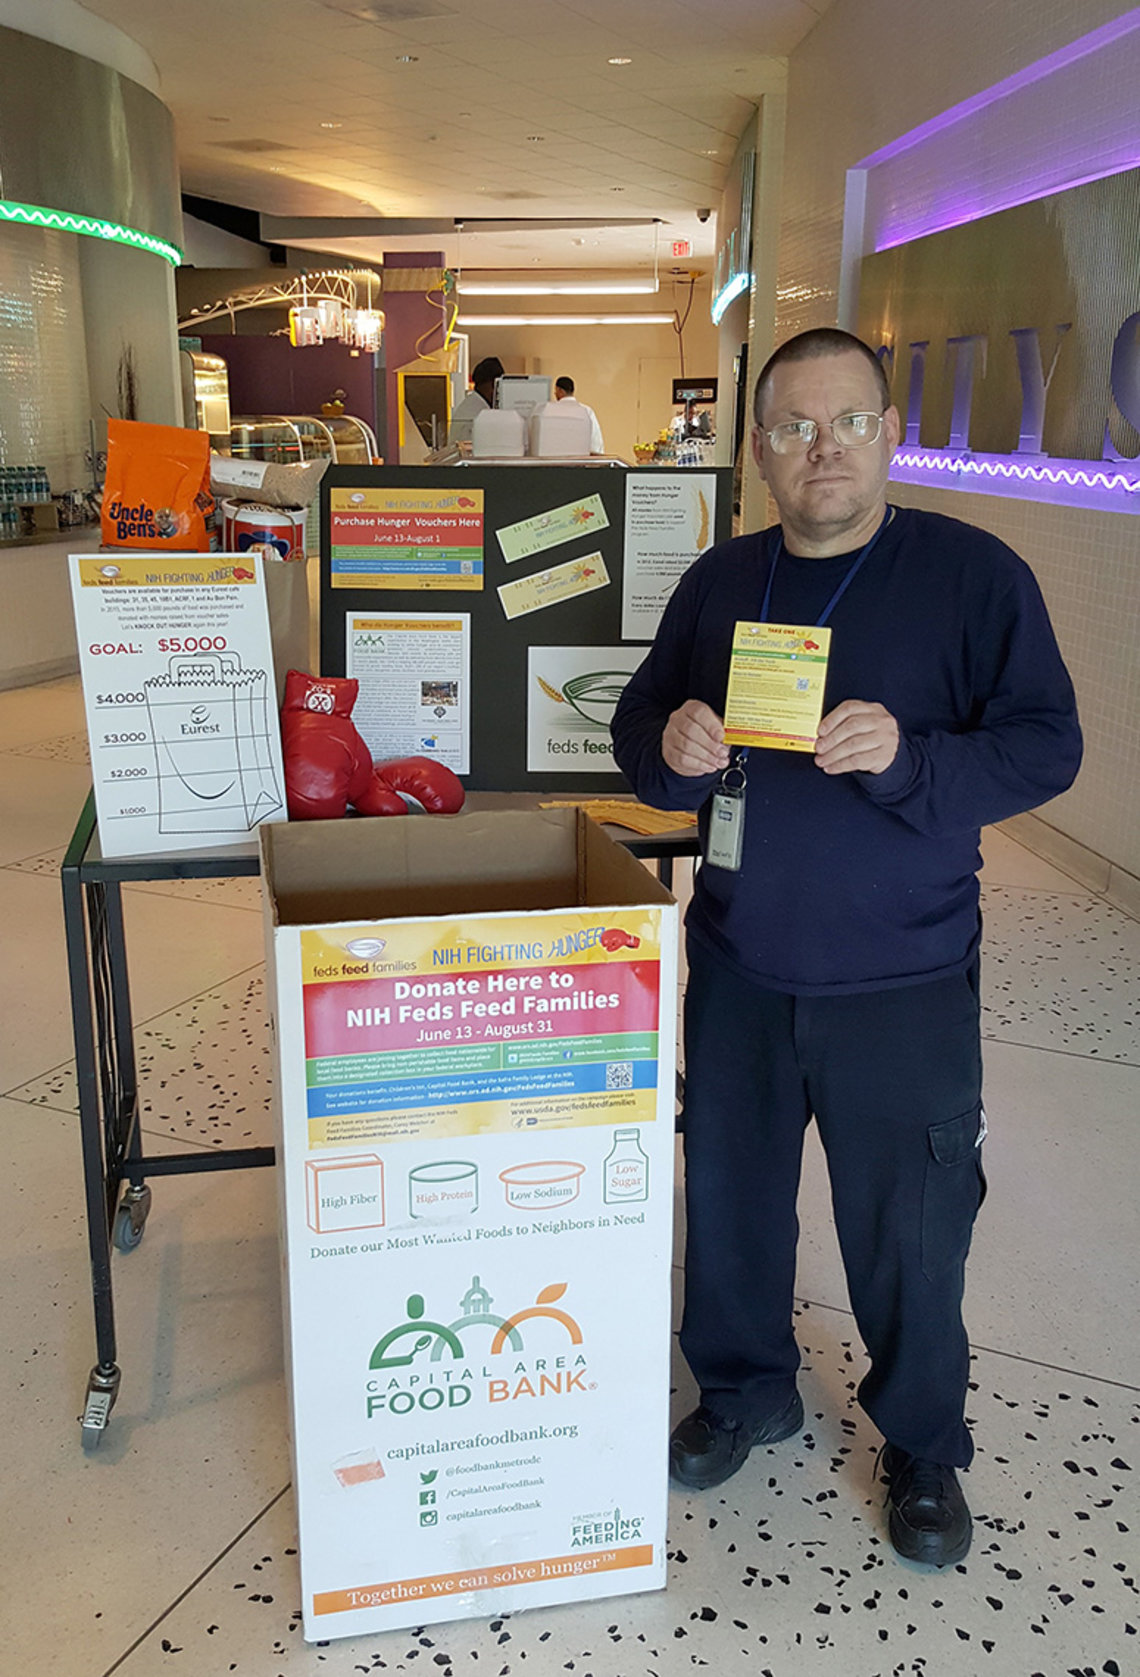 Harrison stands in cafeteria holding hunger-fighting campaign information.